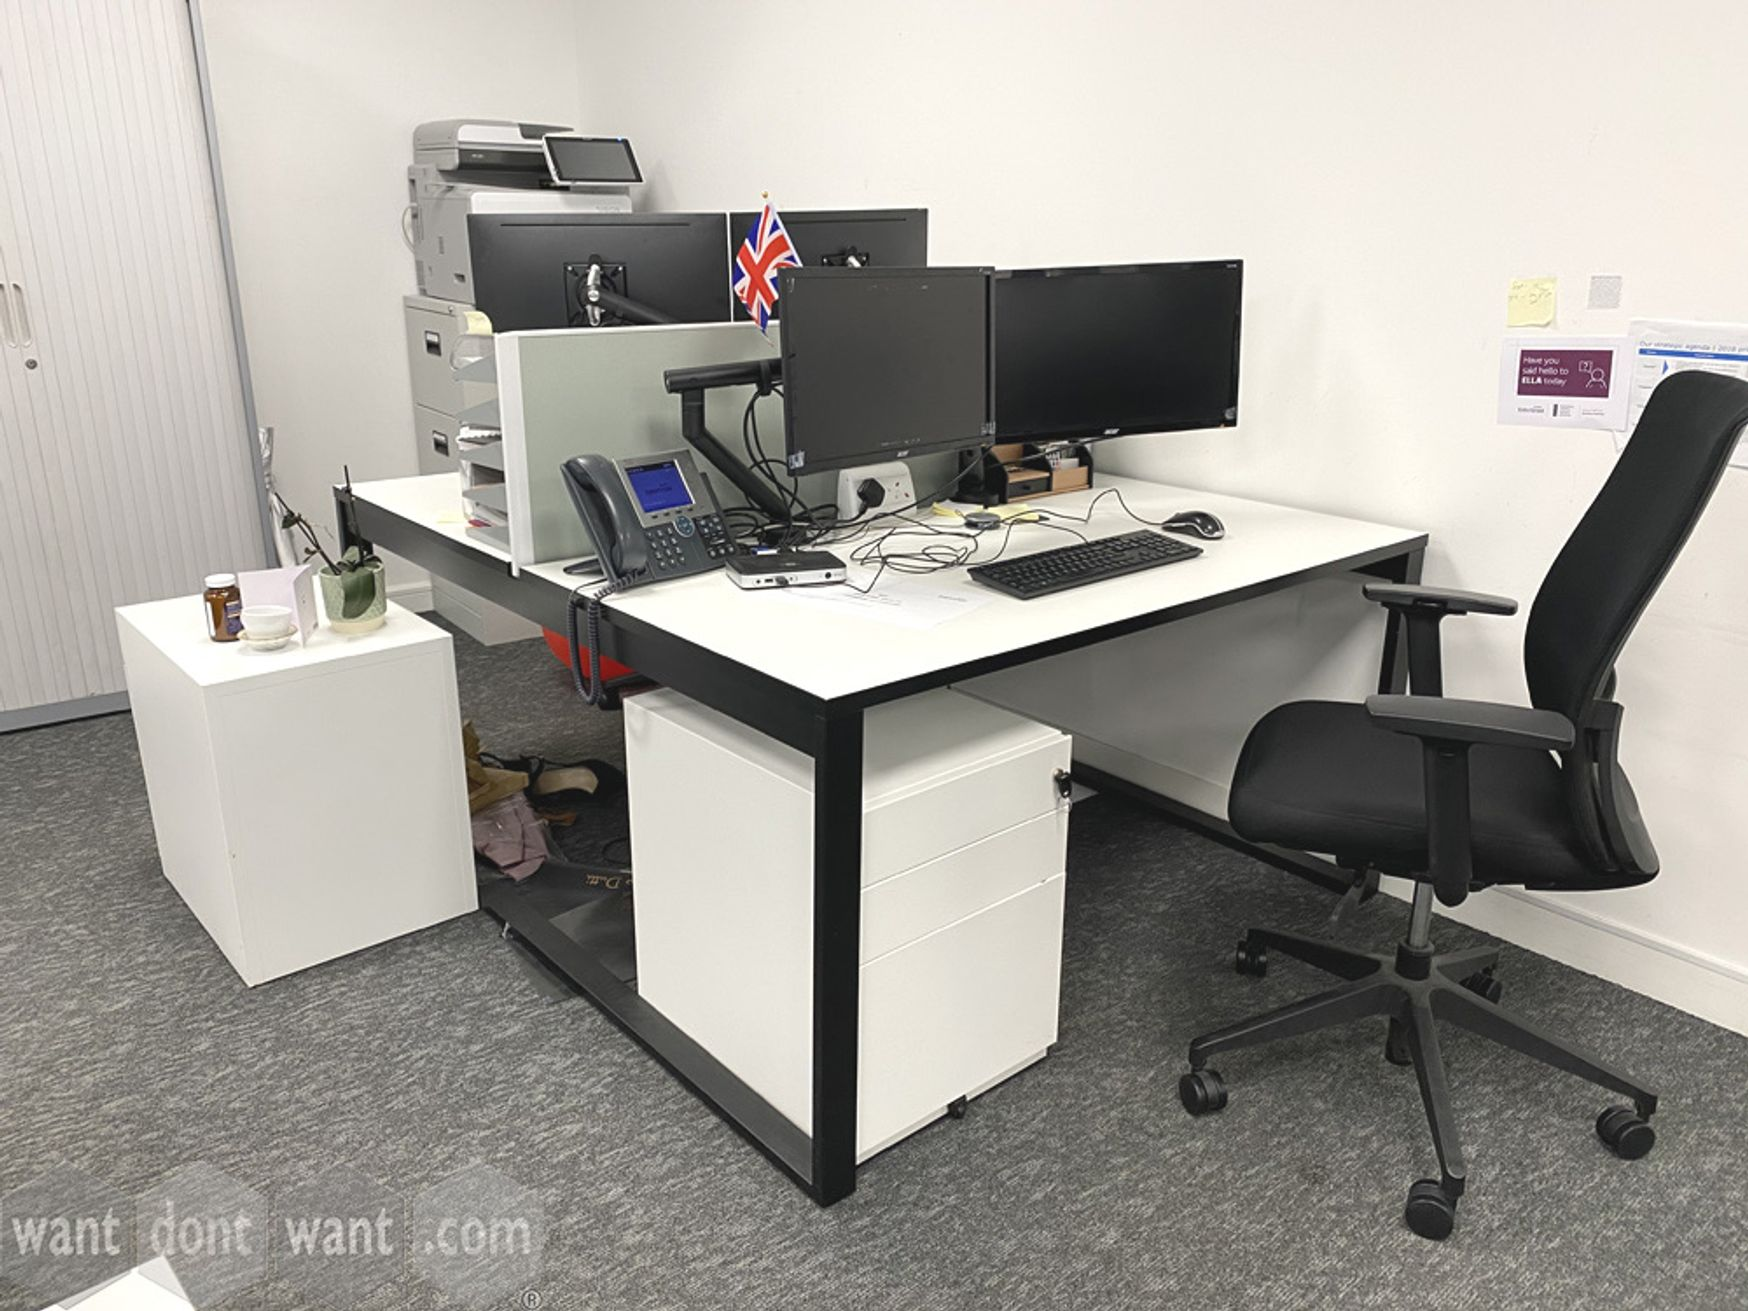 Modern white bench desk with black steel frame - very nice indeed!